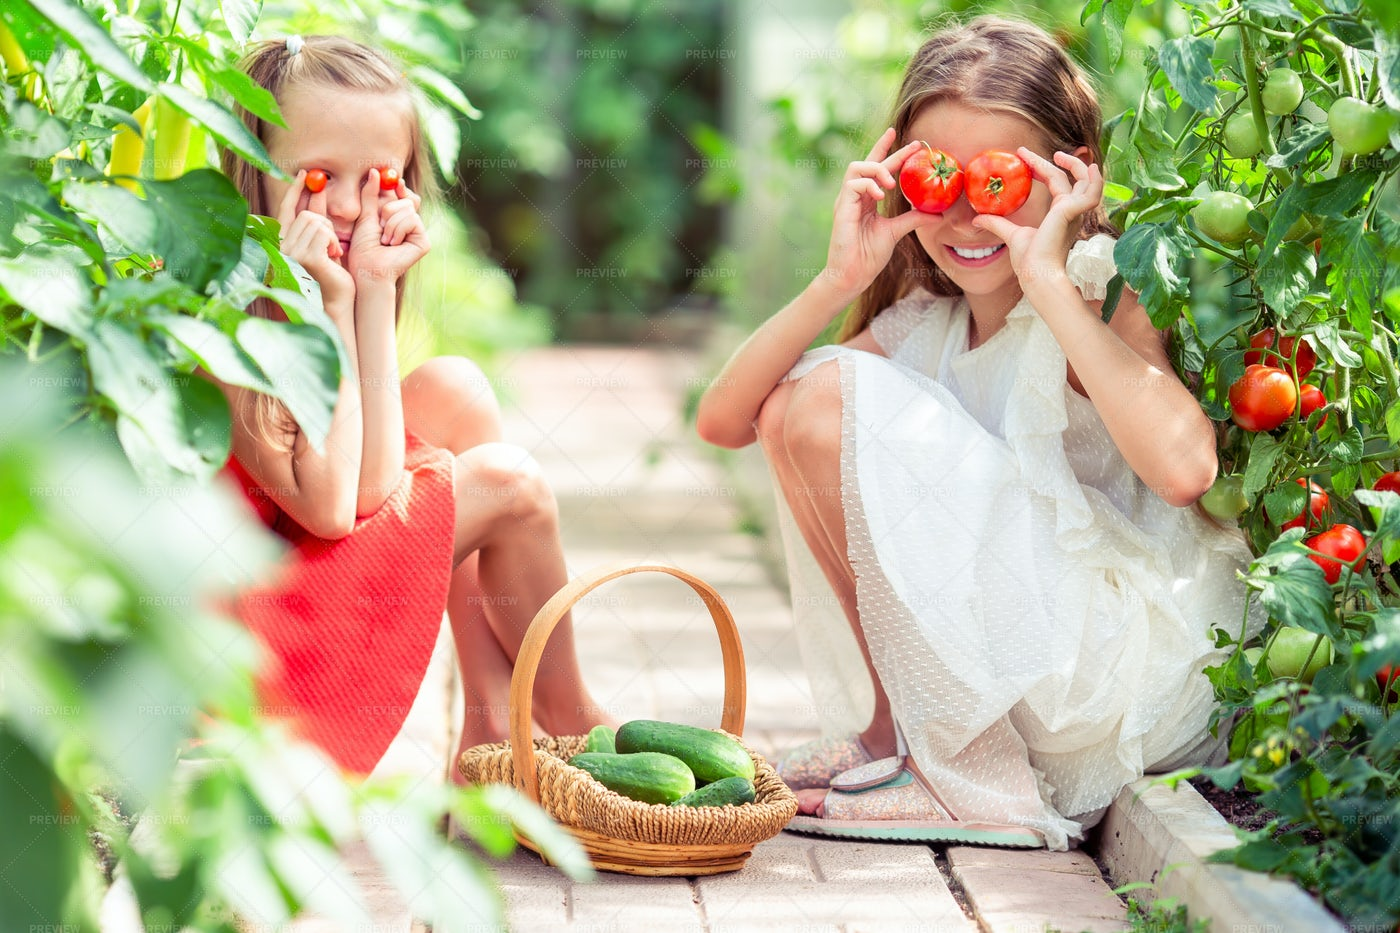 Girls Playing With Tomatoes: Stock Photos